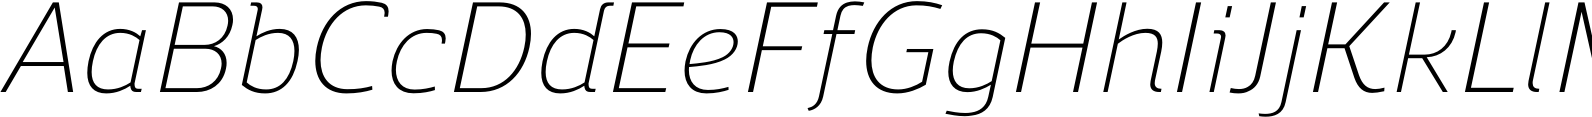 Regan Alt Light Italic